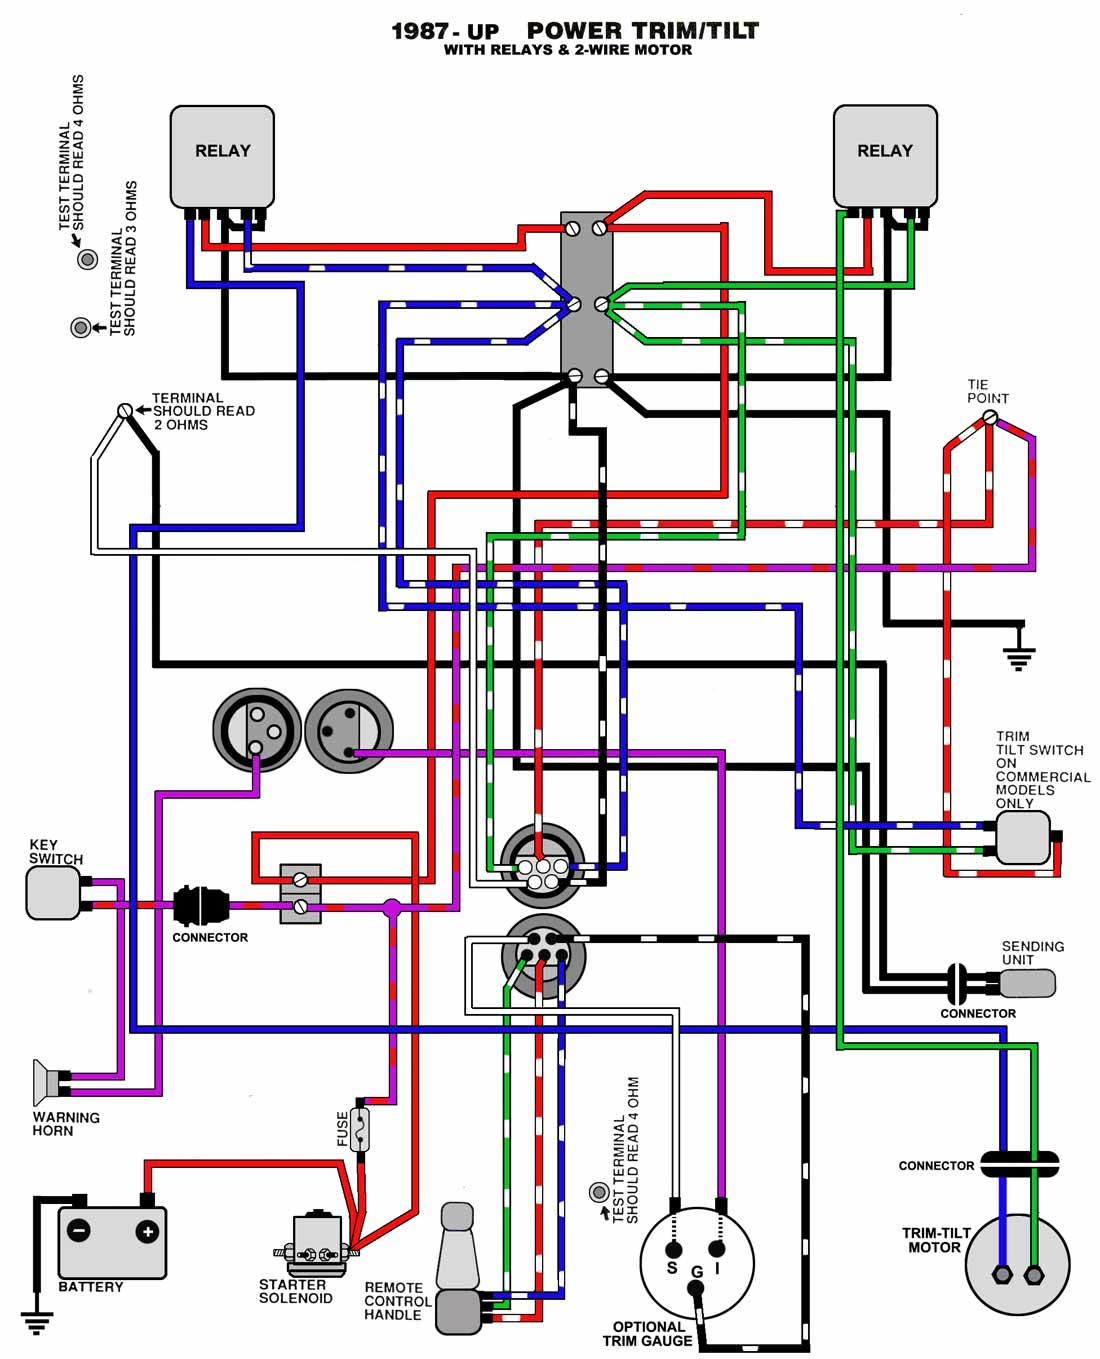 TnT_87_UP mastertech marine evinrude johnson outboard wiring diagrams evinrude key switch wiring diagram at n-0.co